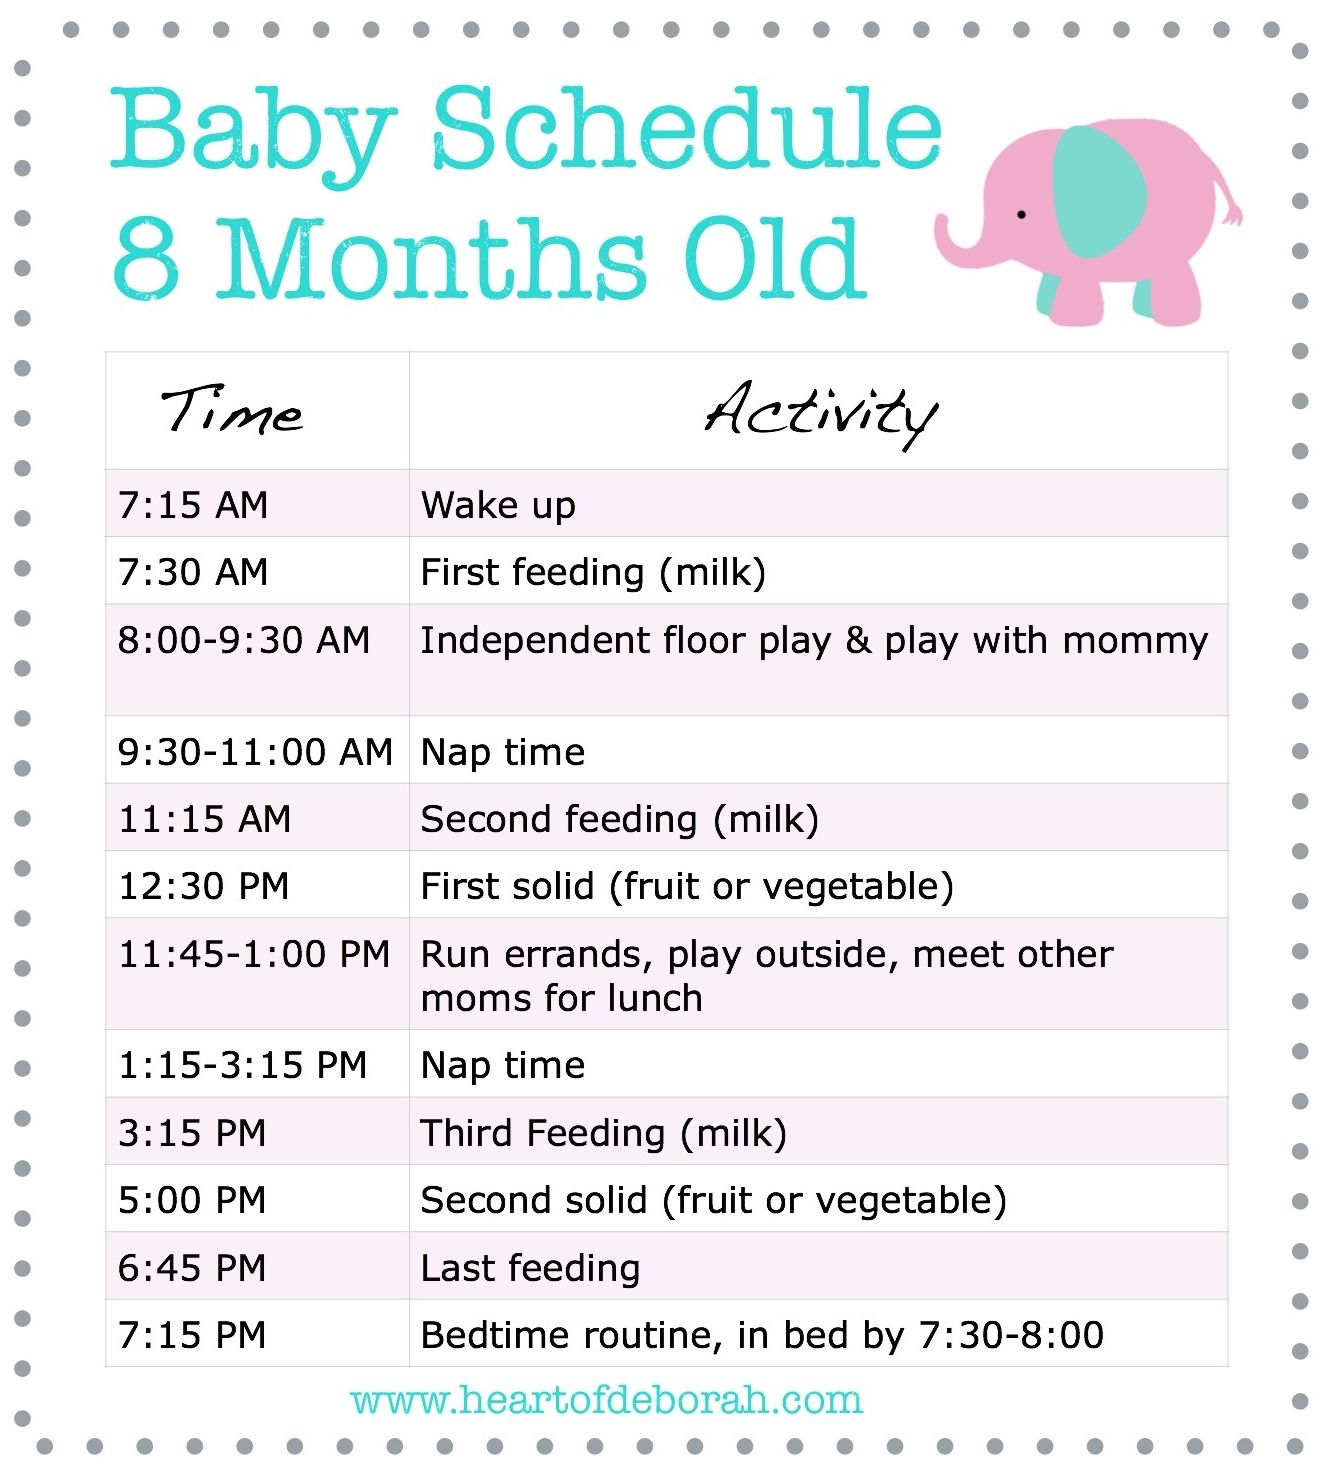 Sample Baby Schedule 8 Months Old Heart Of Deborah Baby Schedule Baby Routine 8 Month Old Baby